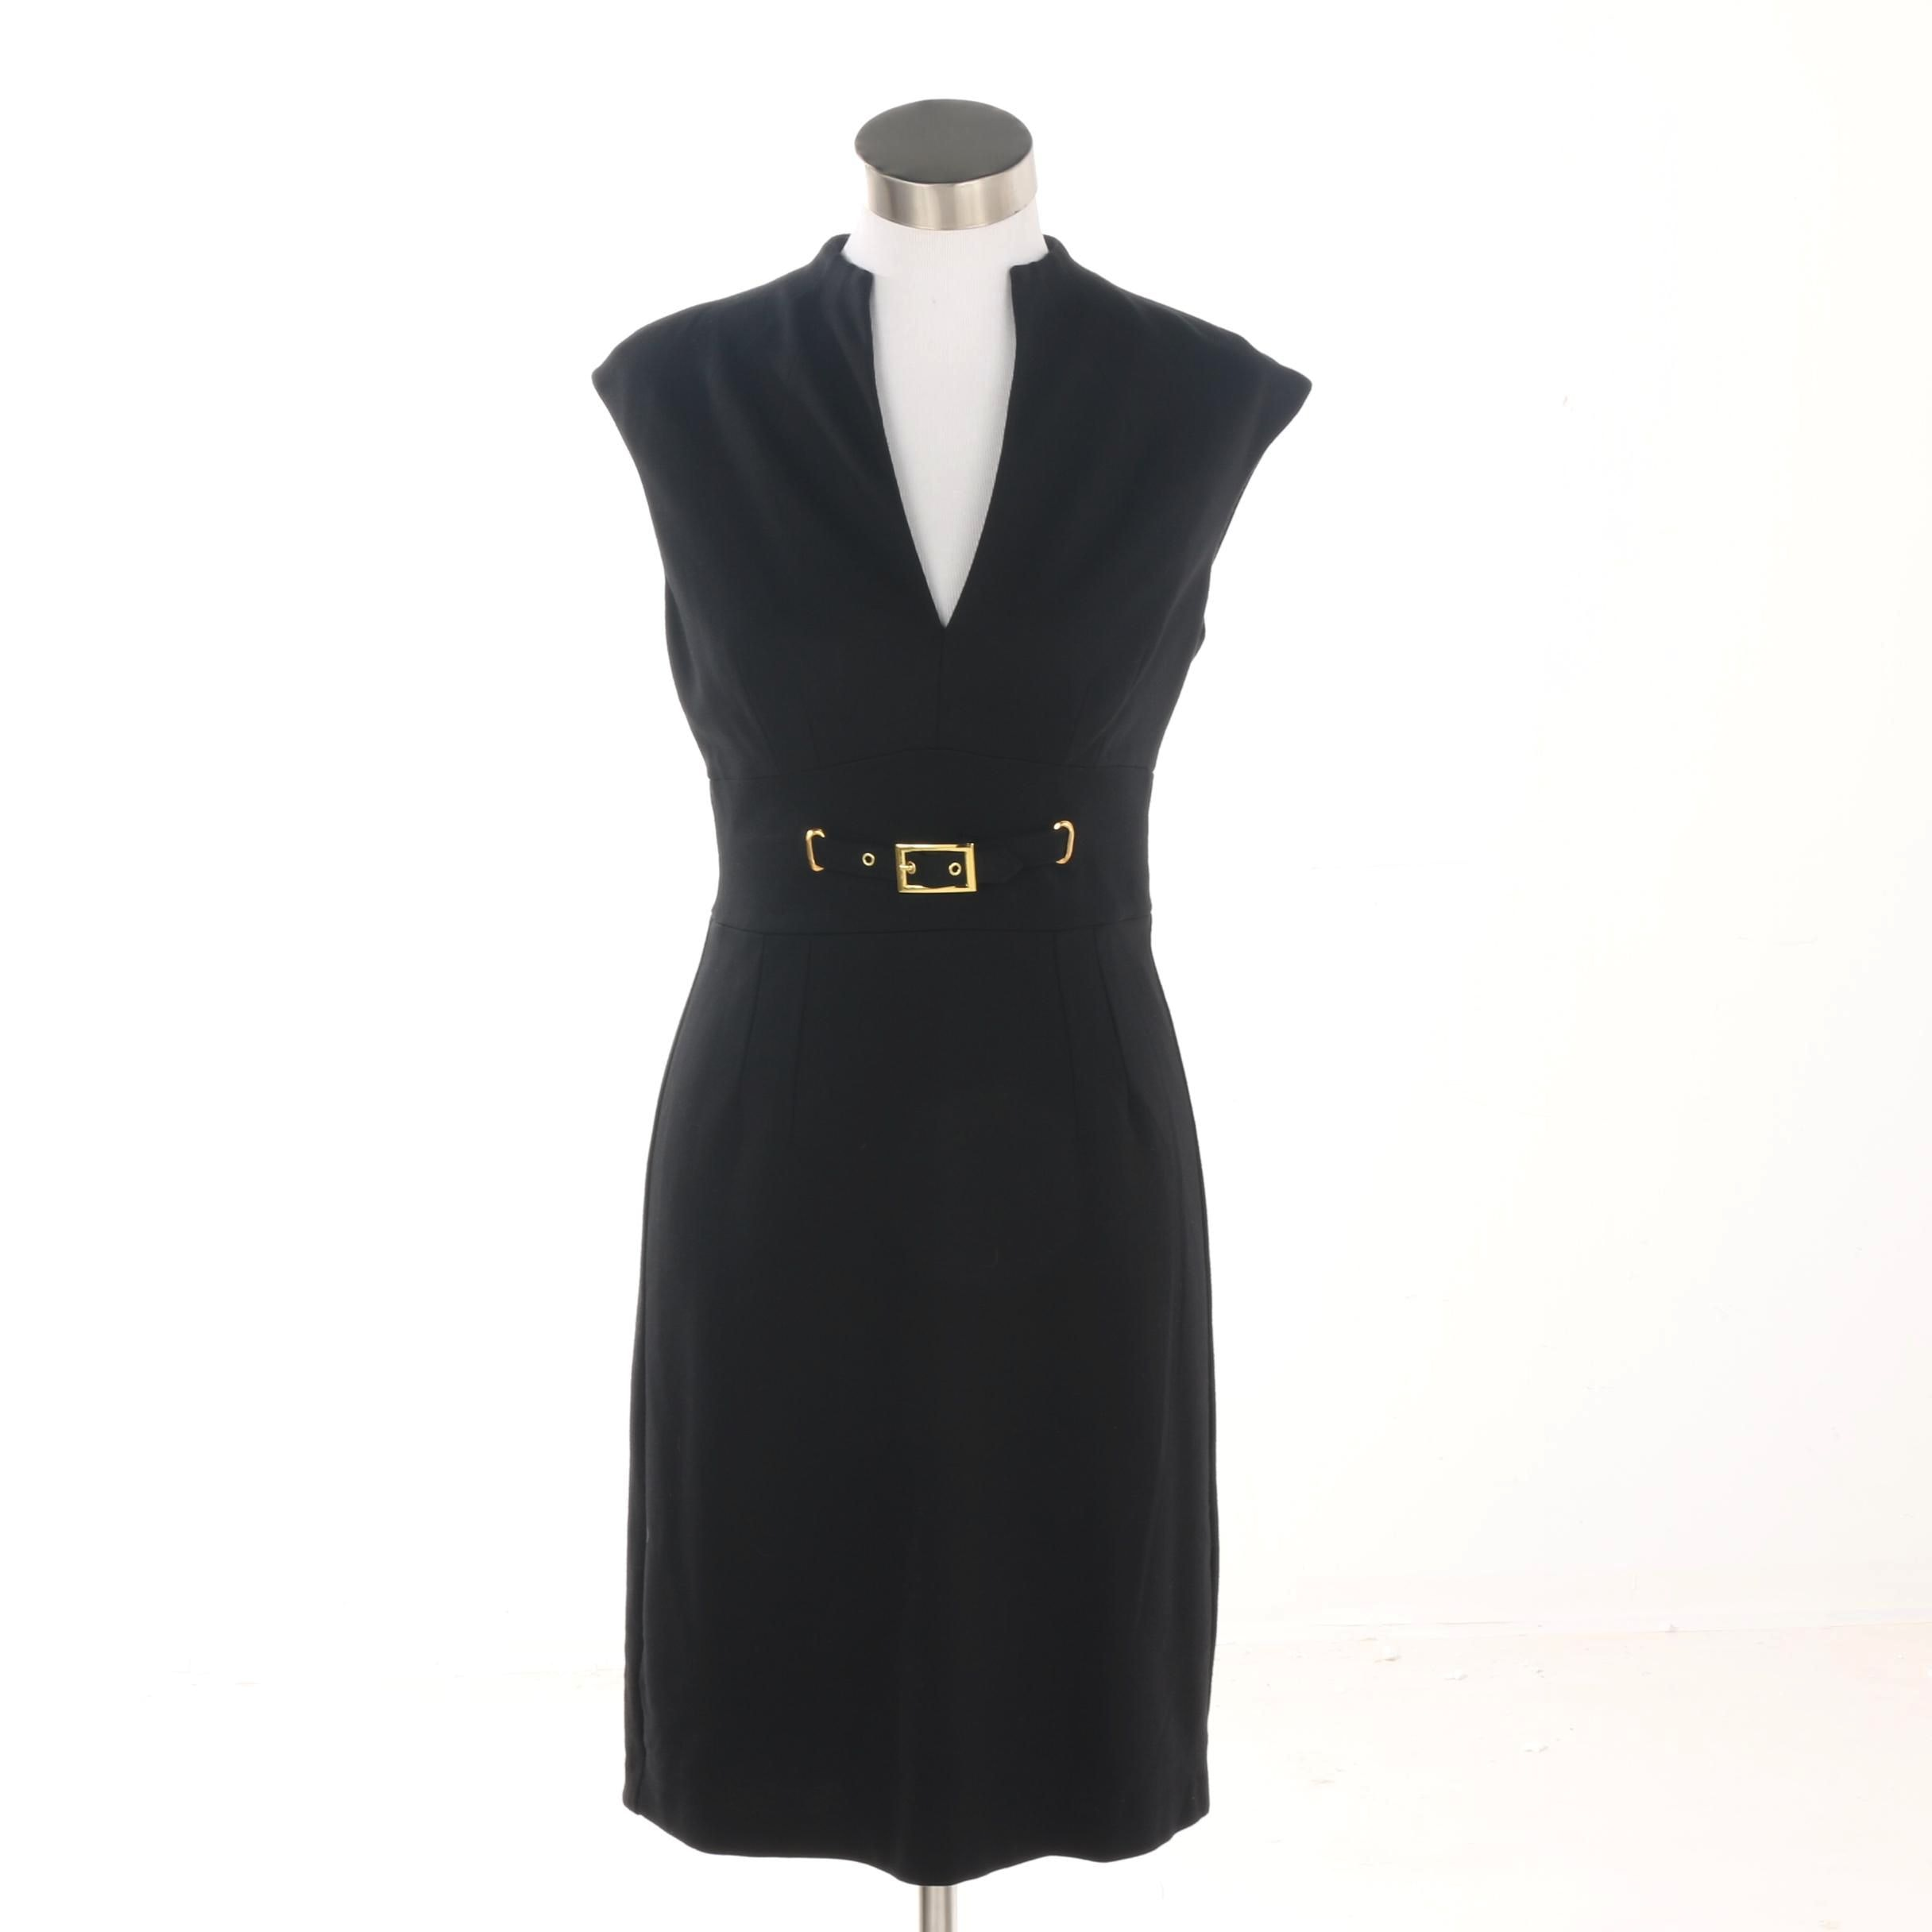 Trina Turk Black Cocktail Dress